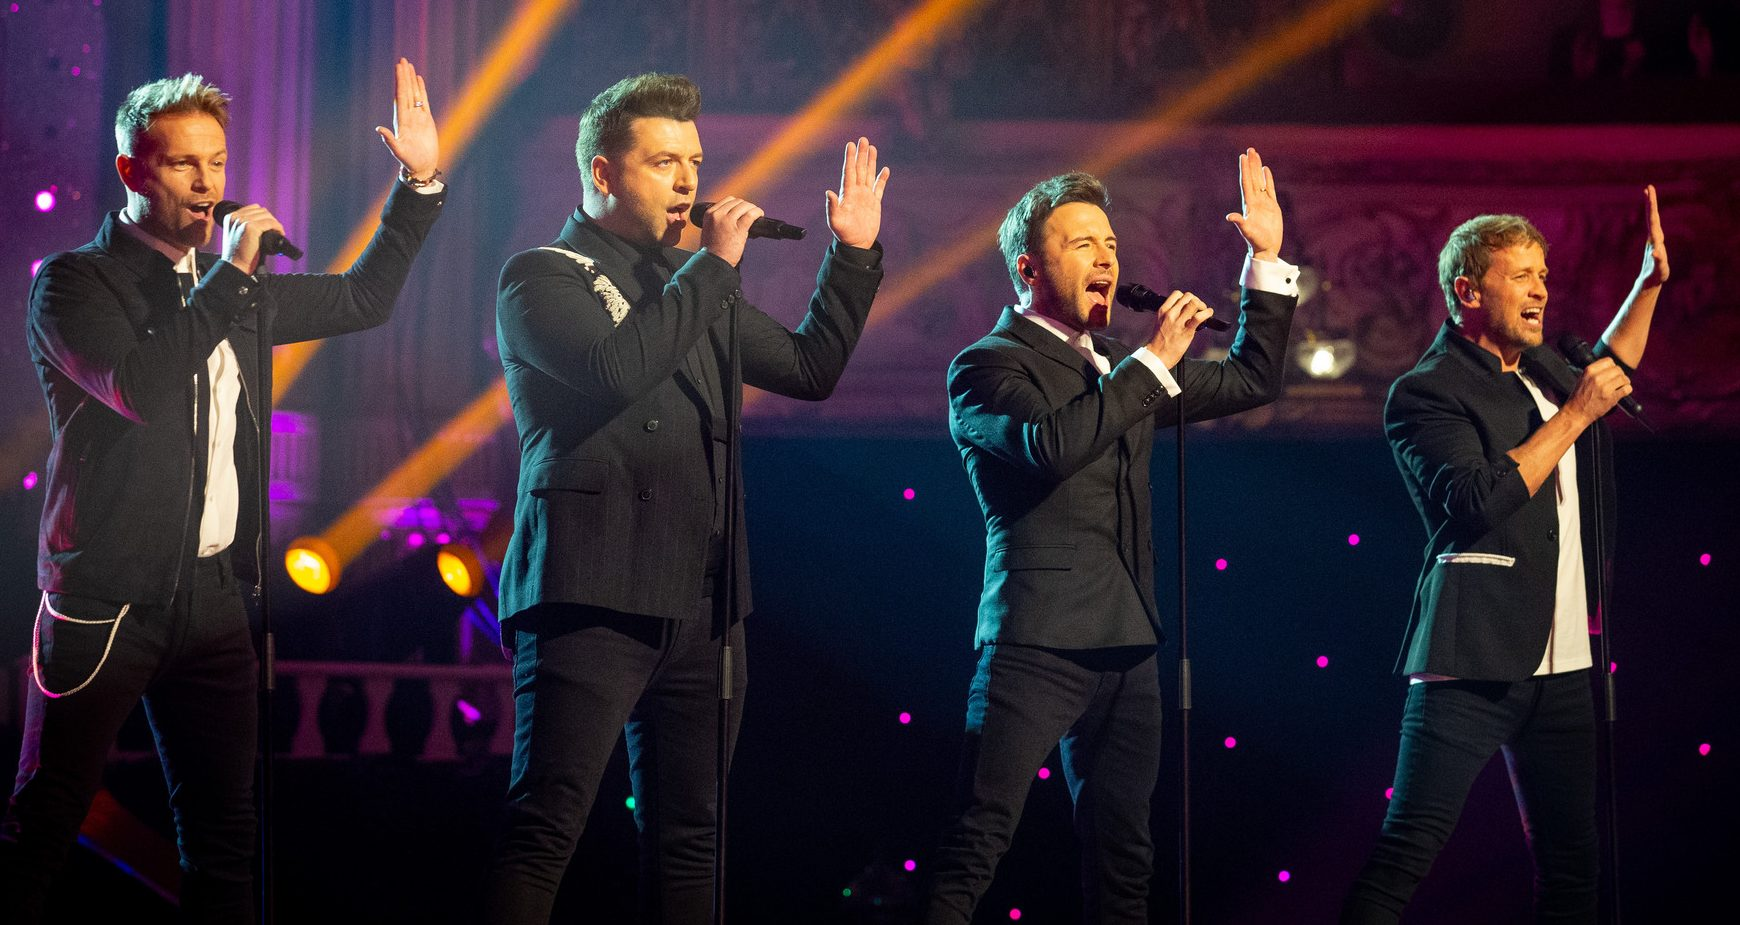 Westlife fans furious over band's 'spoilt' Strictly Come Dancing performance